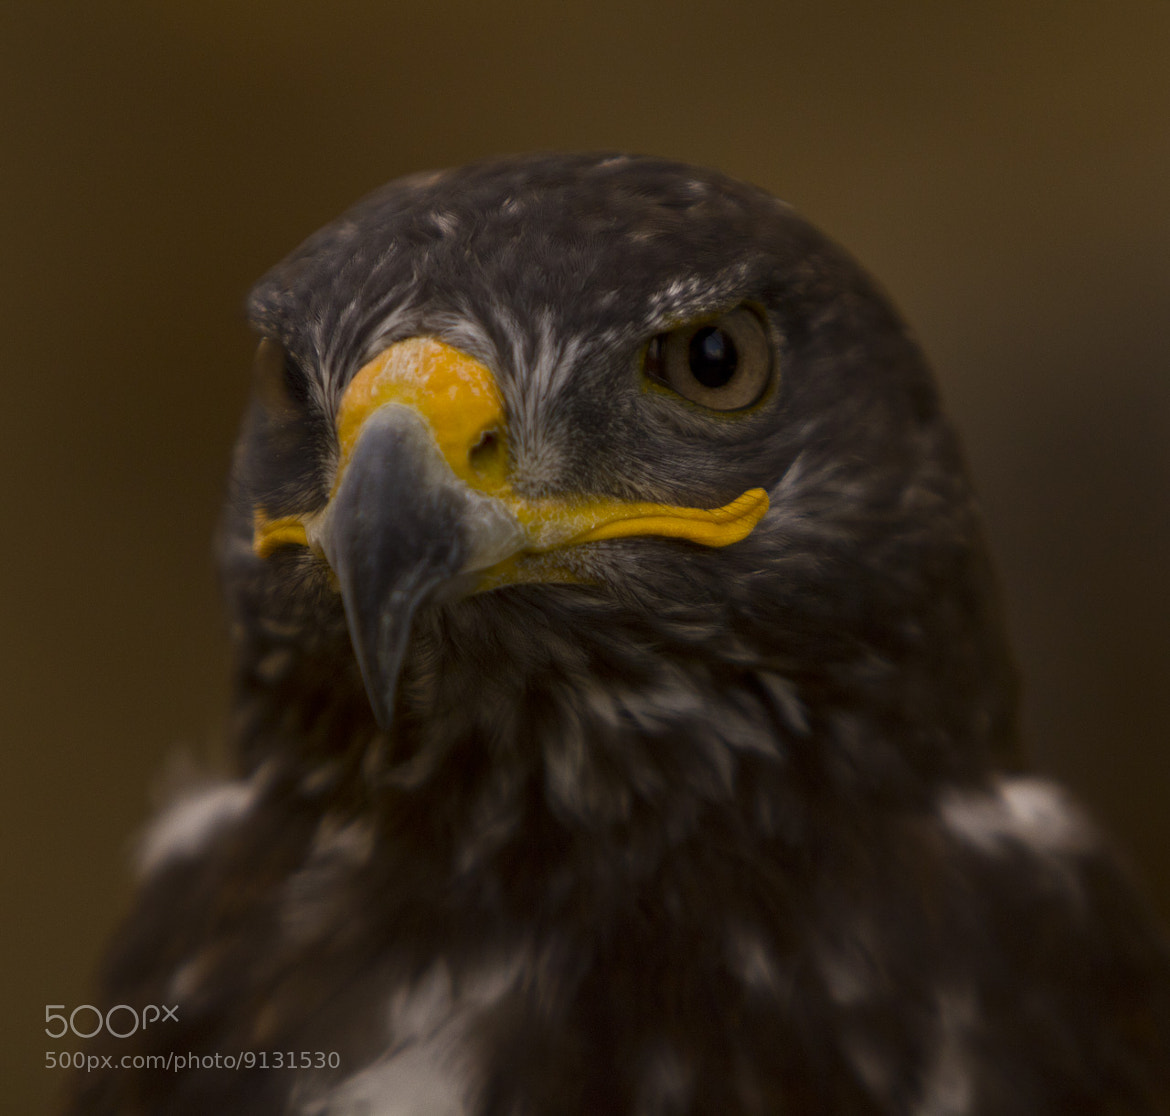 Photograph Eagle booted ( aguila calzada) by Oscar Ferreres on 500px